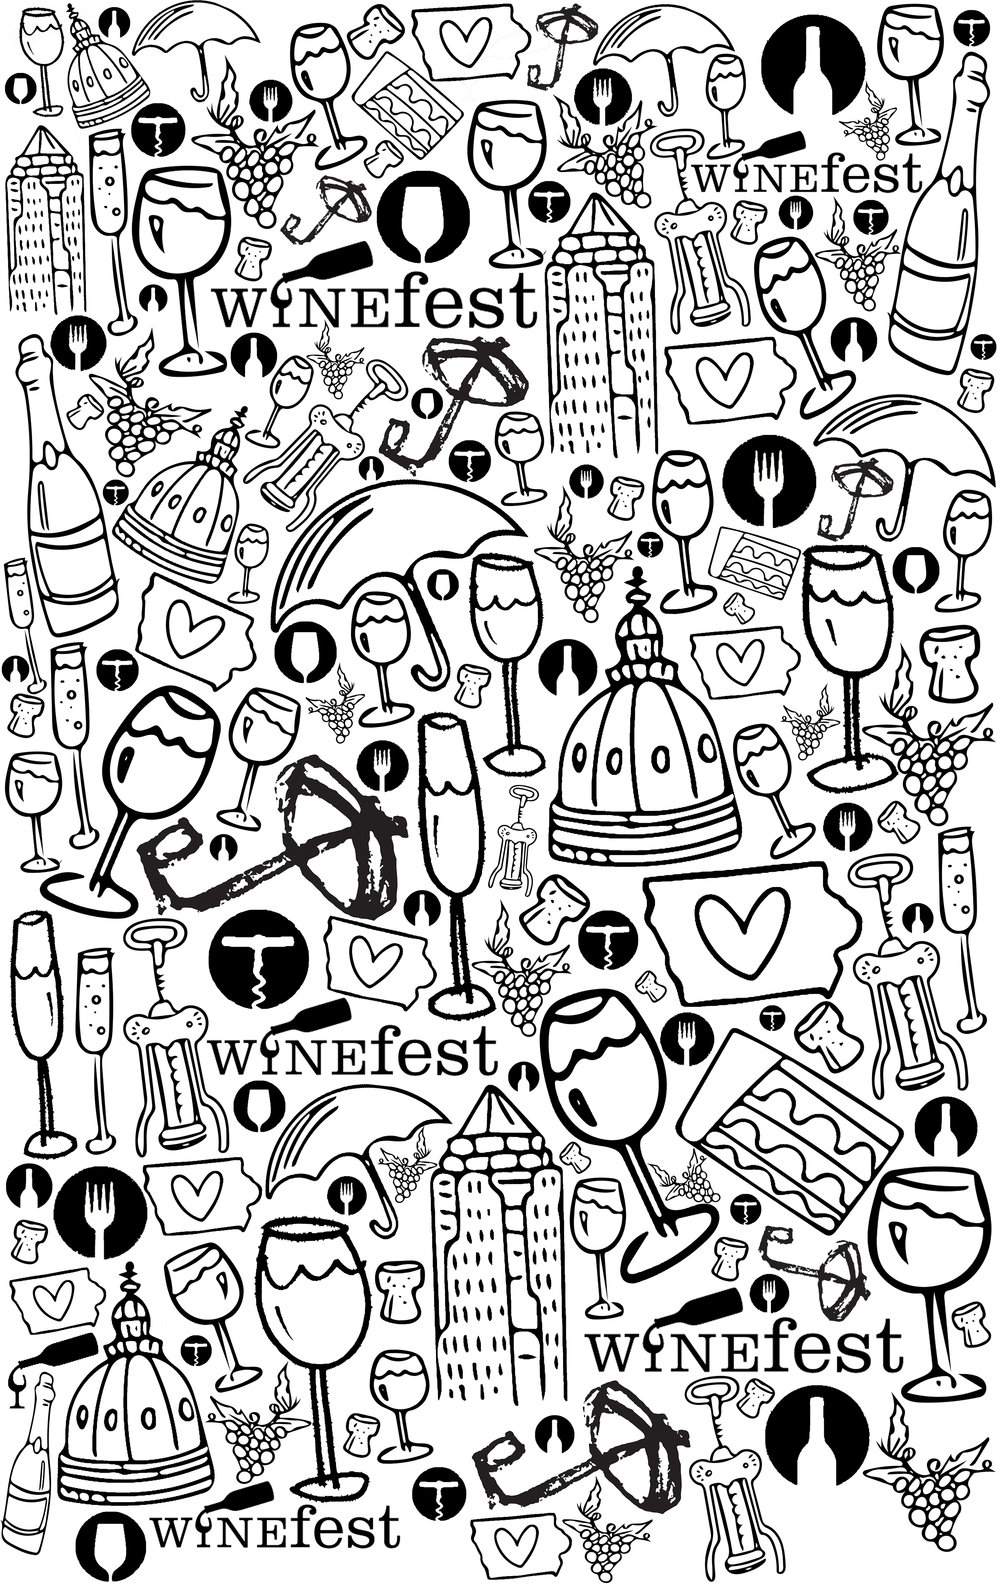 Coloring pages for restaurants - Winefest Jpg